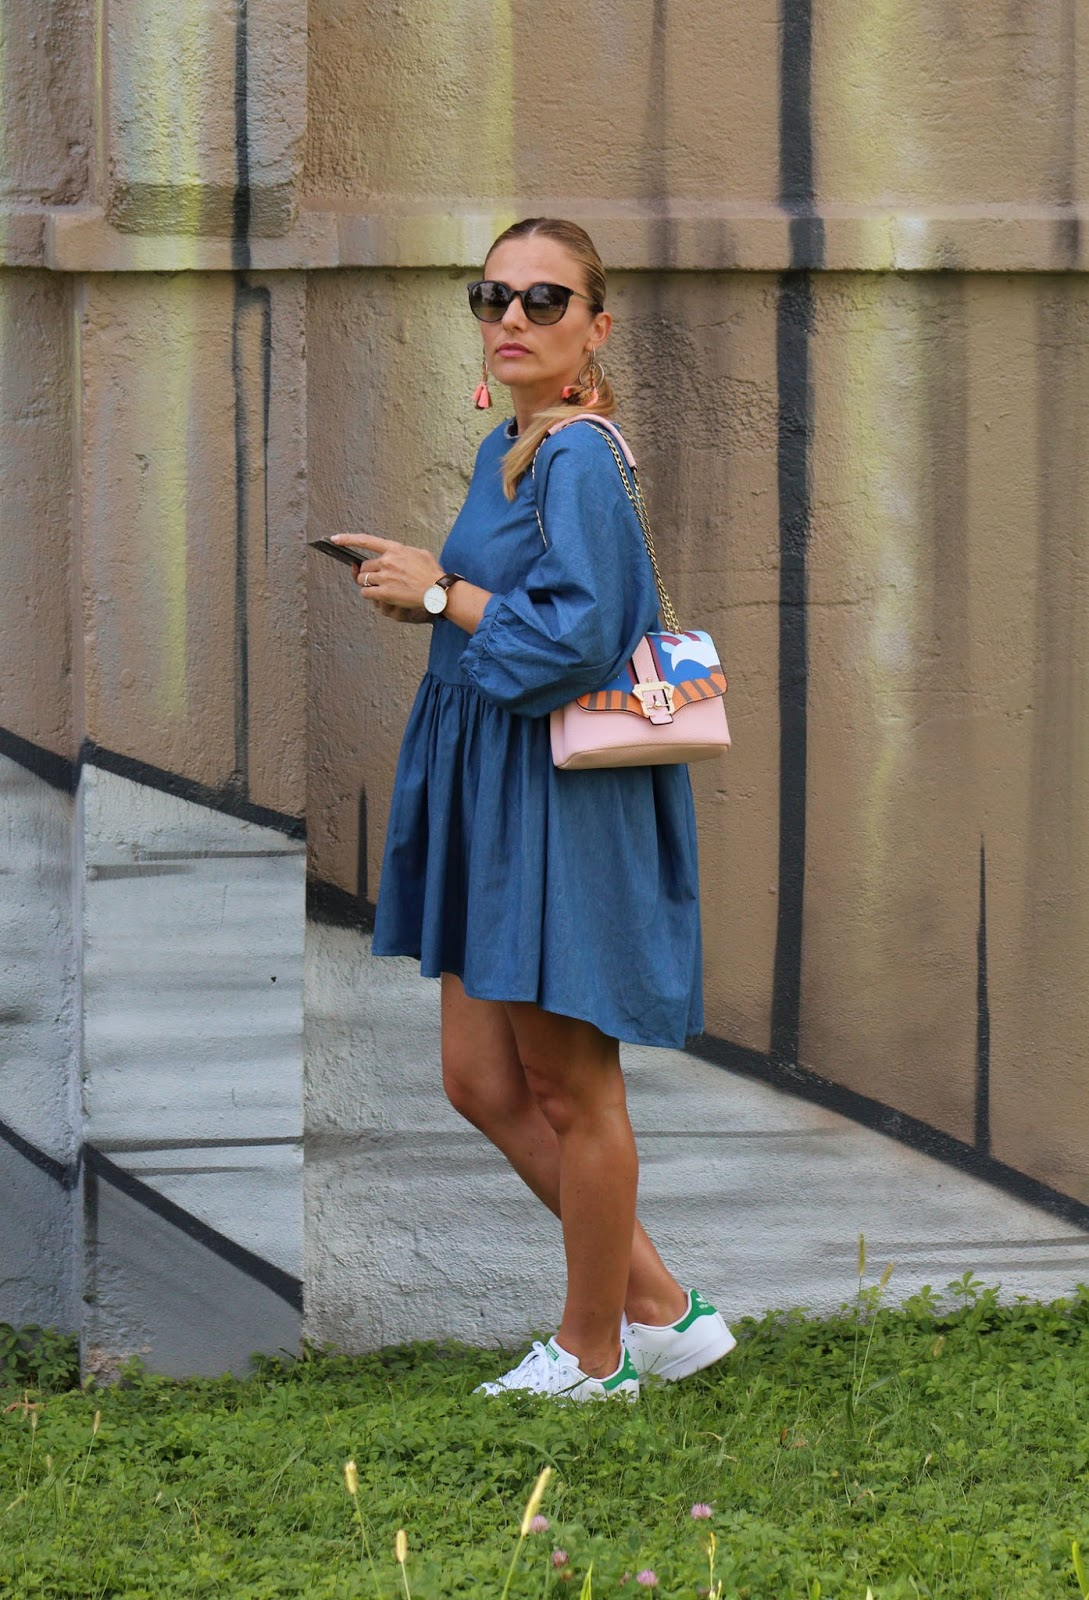 Eniwhere Fashion - Zaful - ootd - denim dress